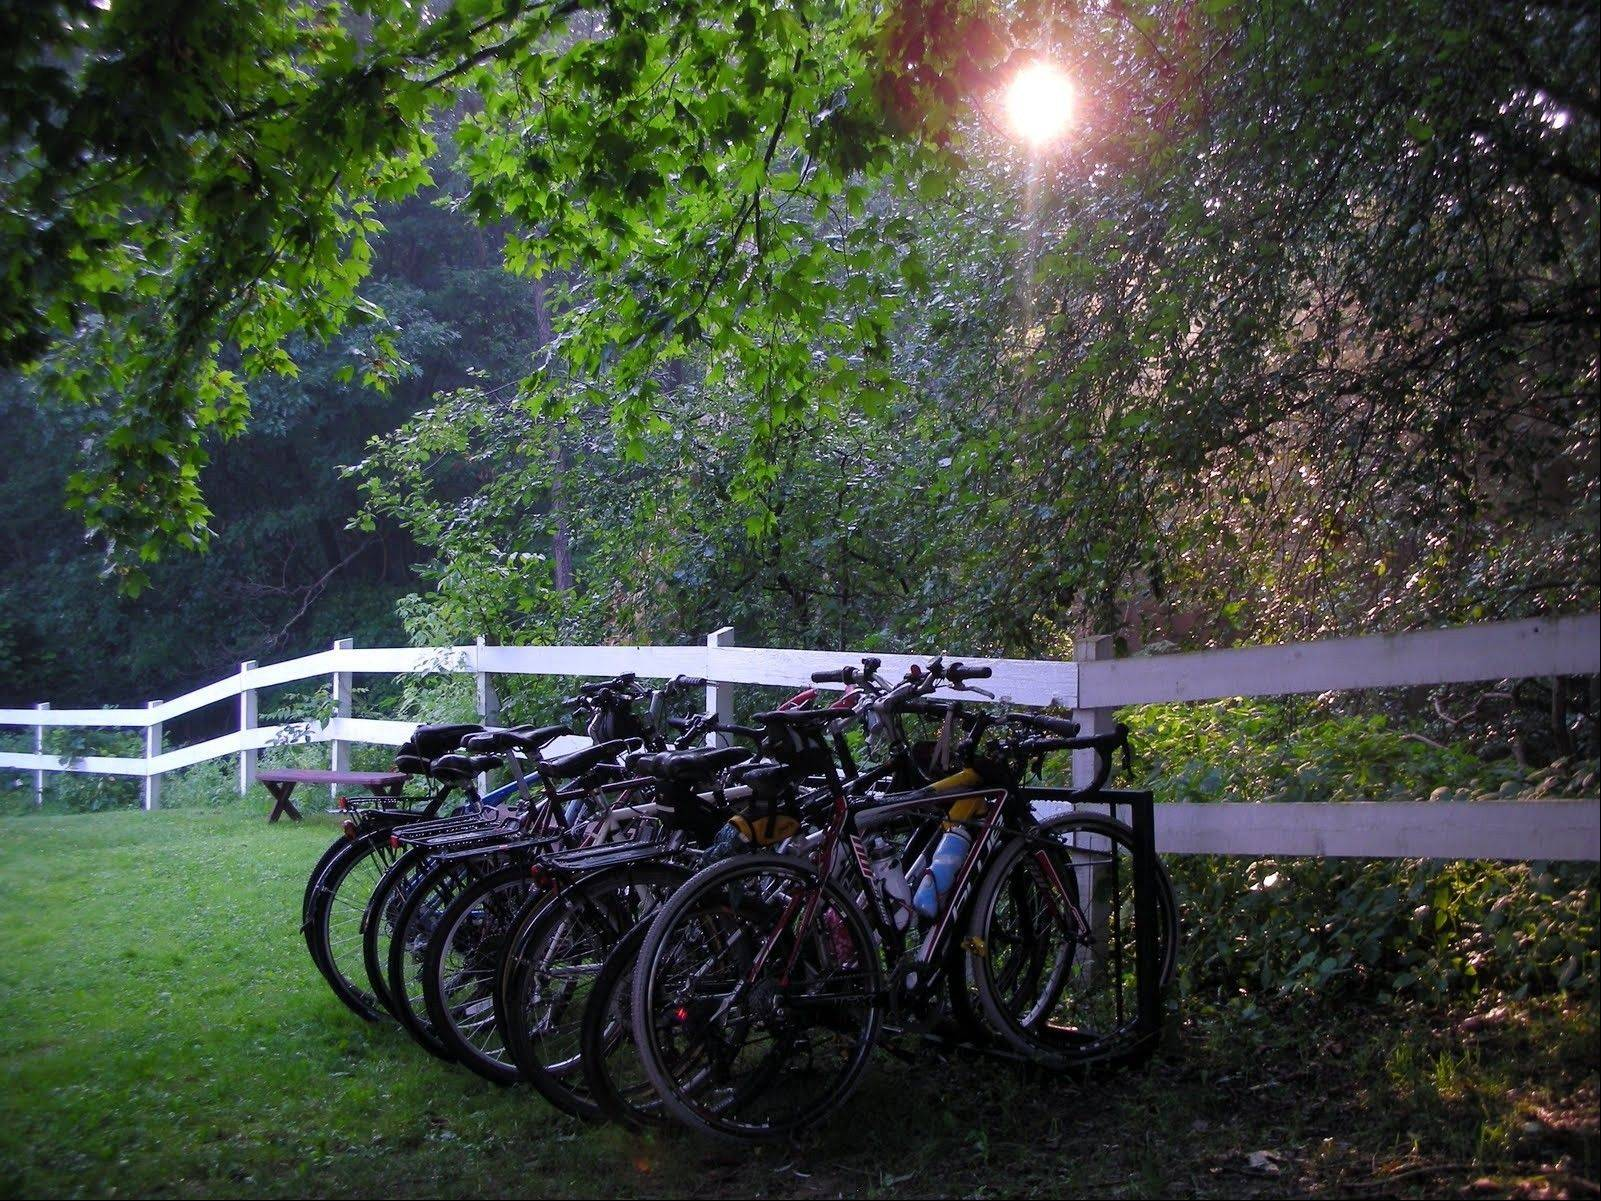 Bikes parked at the Gingerbread House B & B along the Great Allegheny Passage at dawn at Rockwood, Pa. Amenities are well-spaced, but not plentiful along the trail between Pittsburgh and Cumberland, Md.